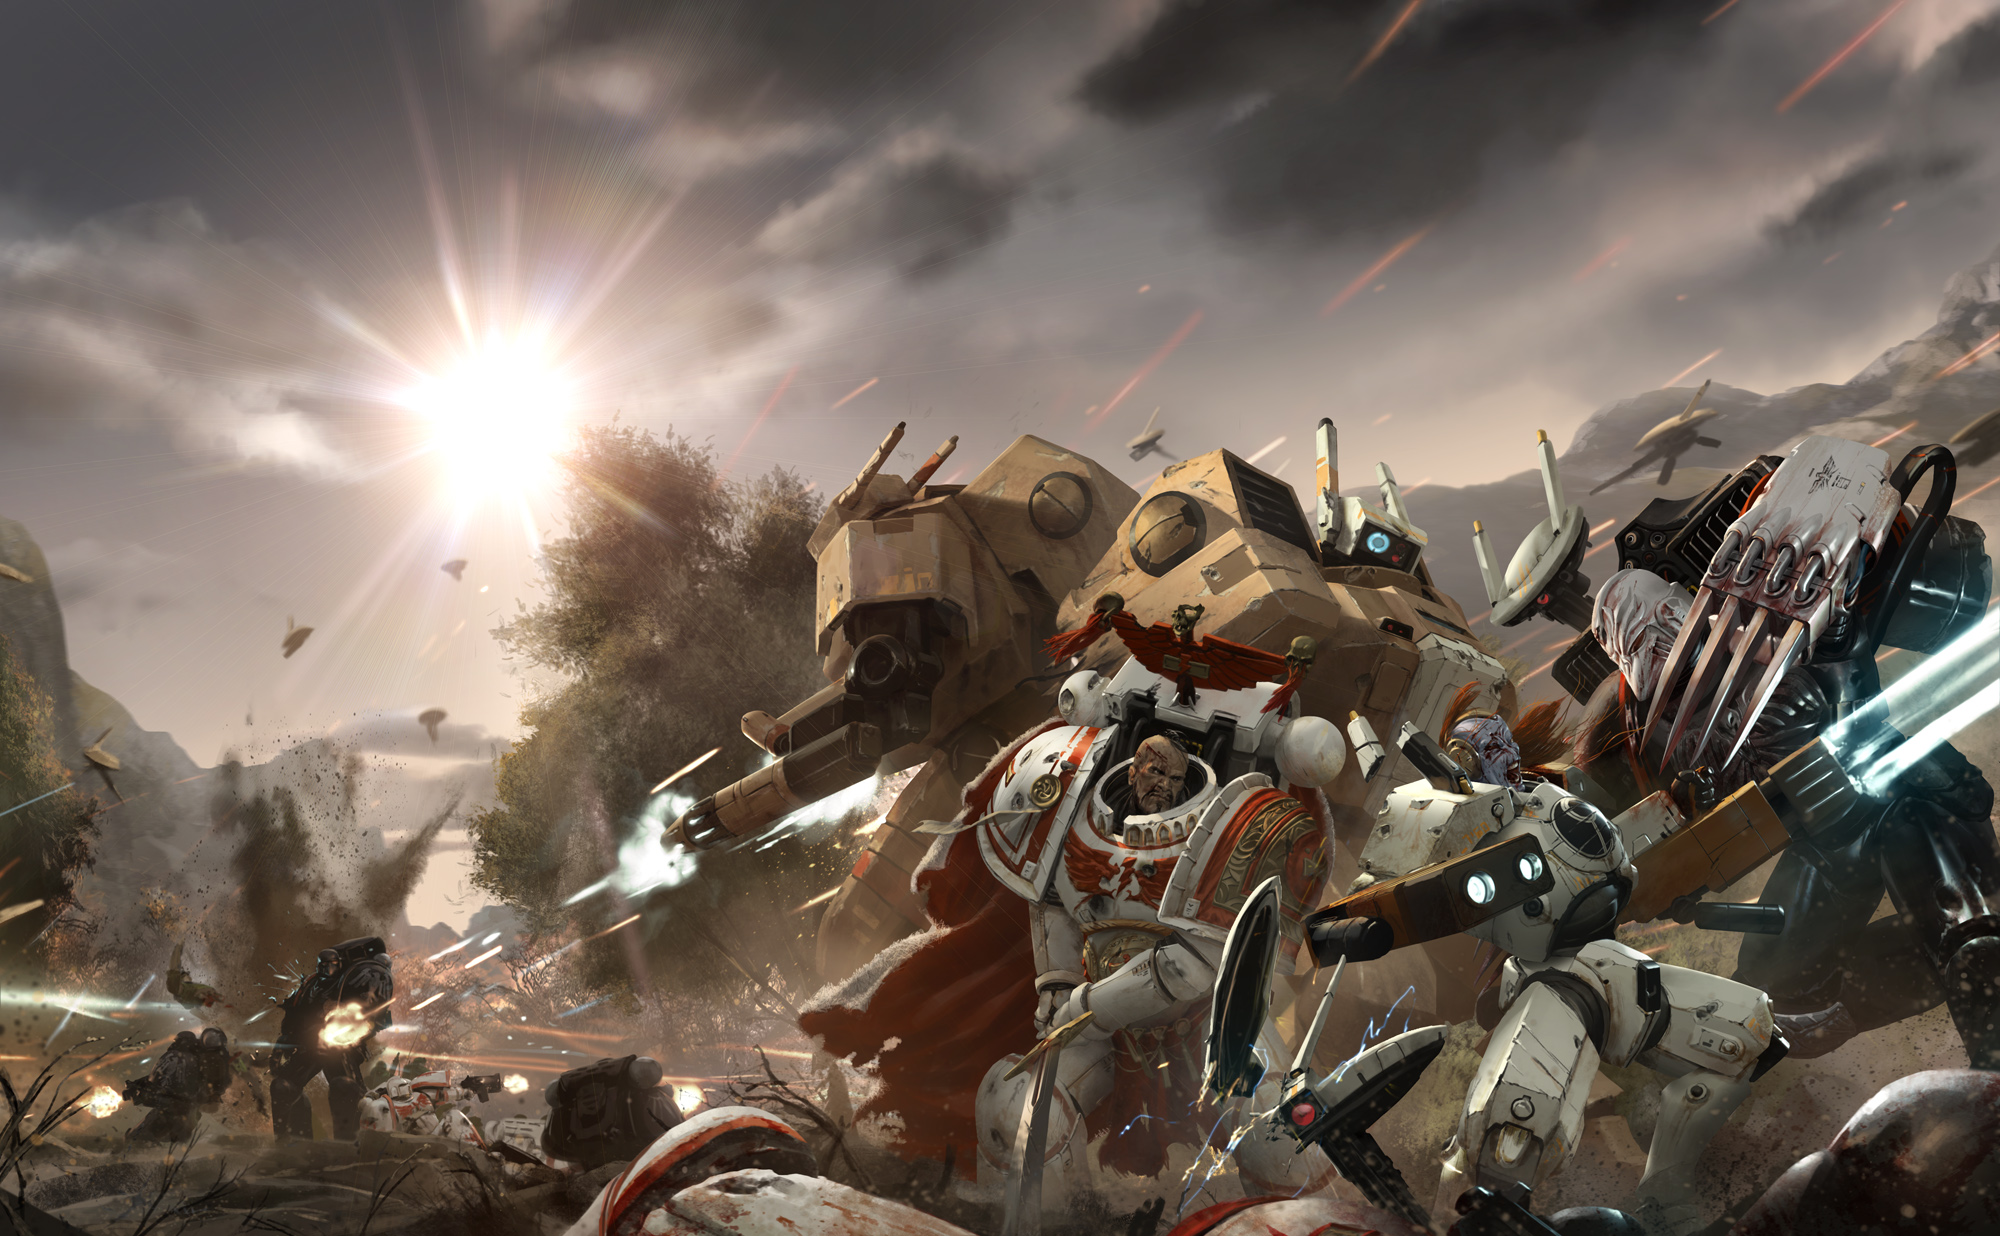 Black Library: Damocles